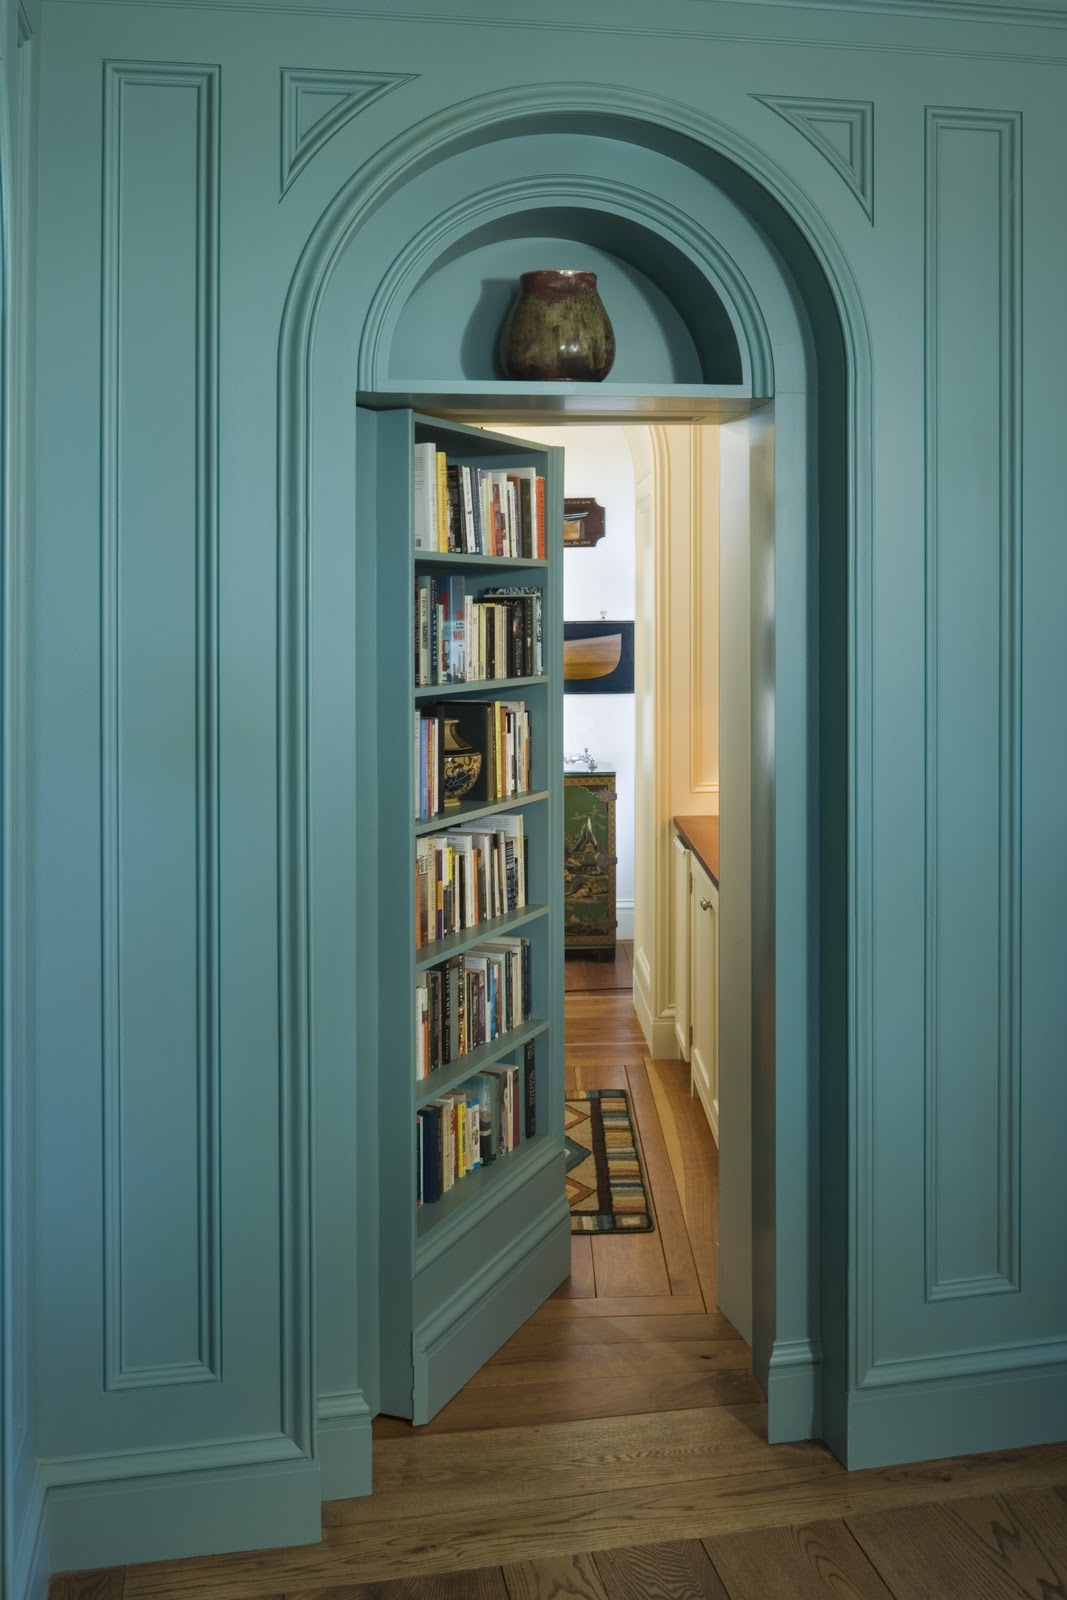 Yes, this is a hidden door. A hidden bookcase door. Also known as that title=